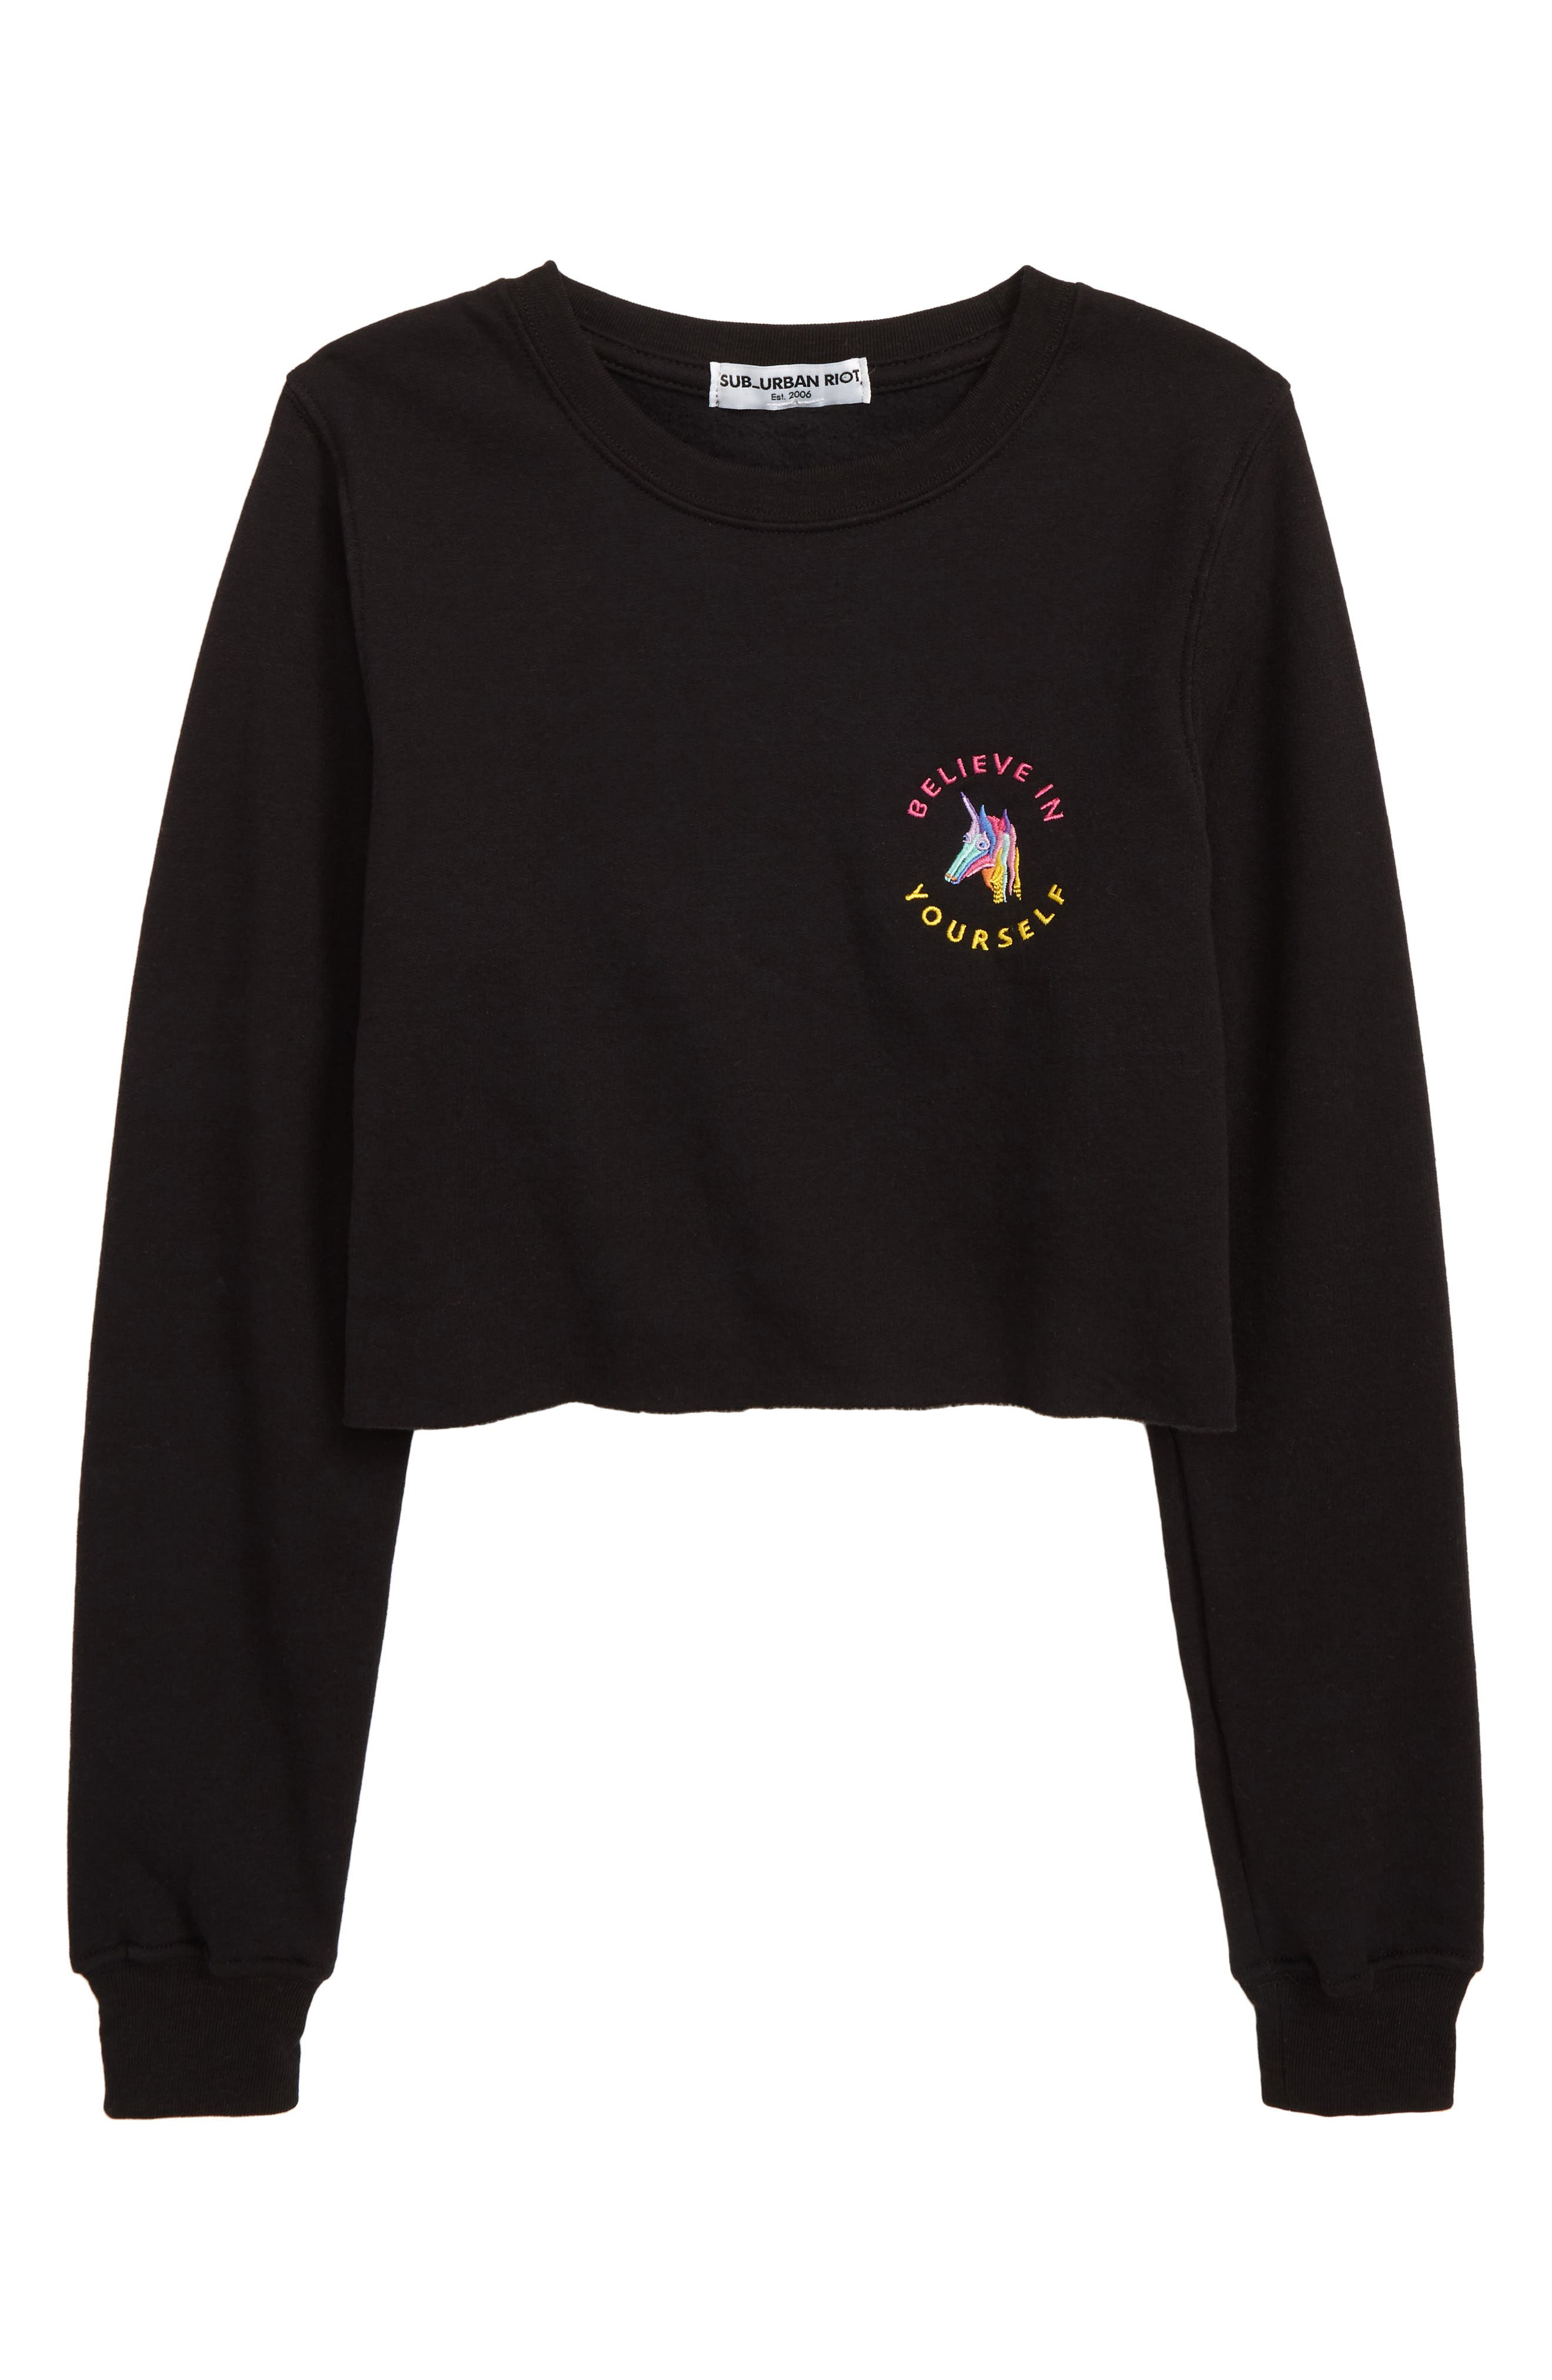 SUB_URBAN RIOT Believe in Yourself Sweatshirt, Main, color, BLACK